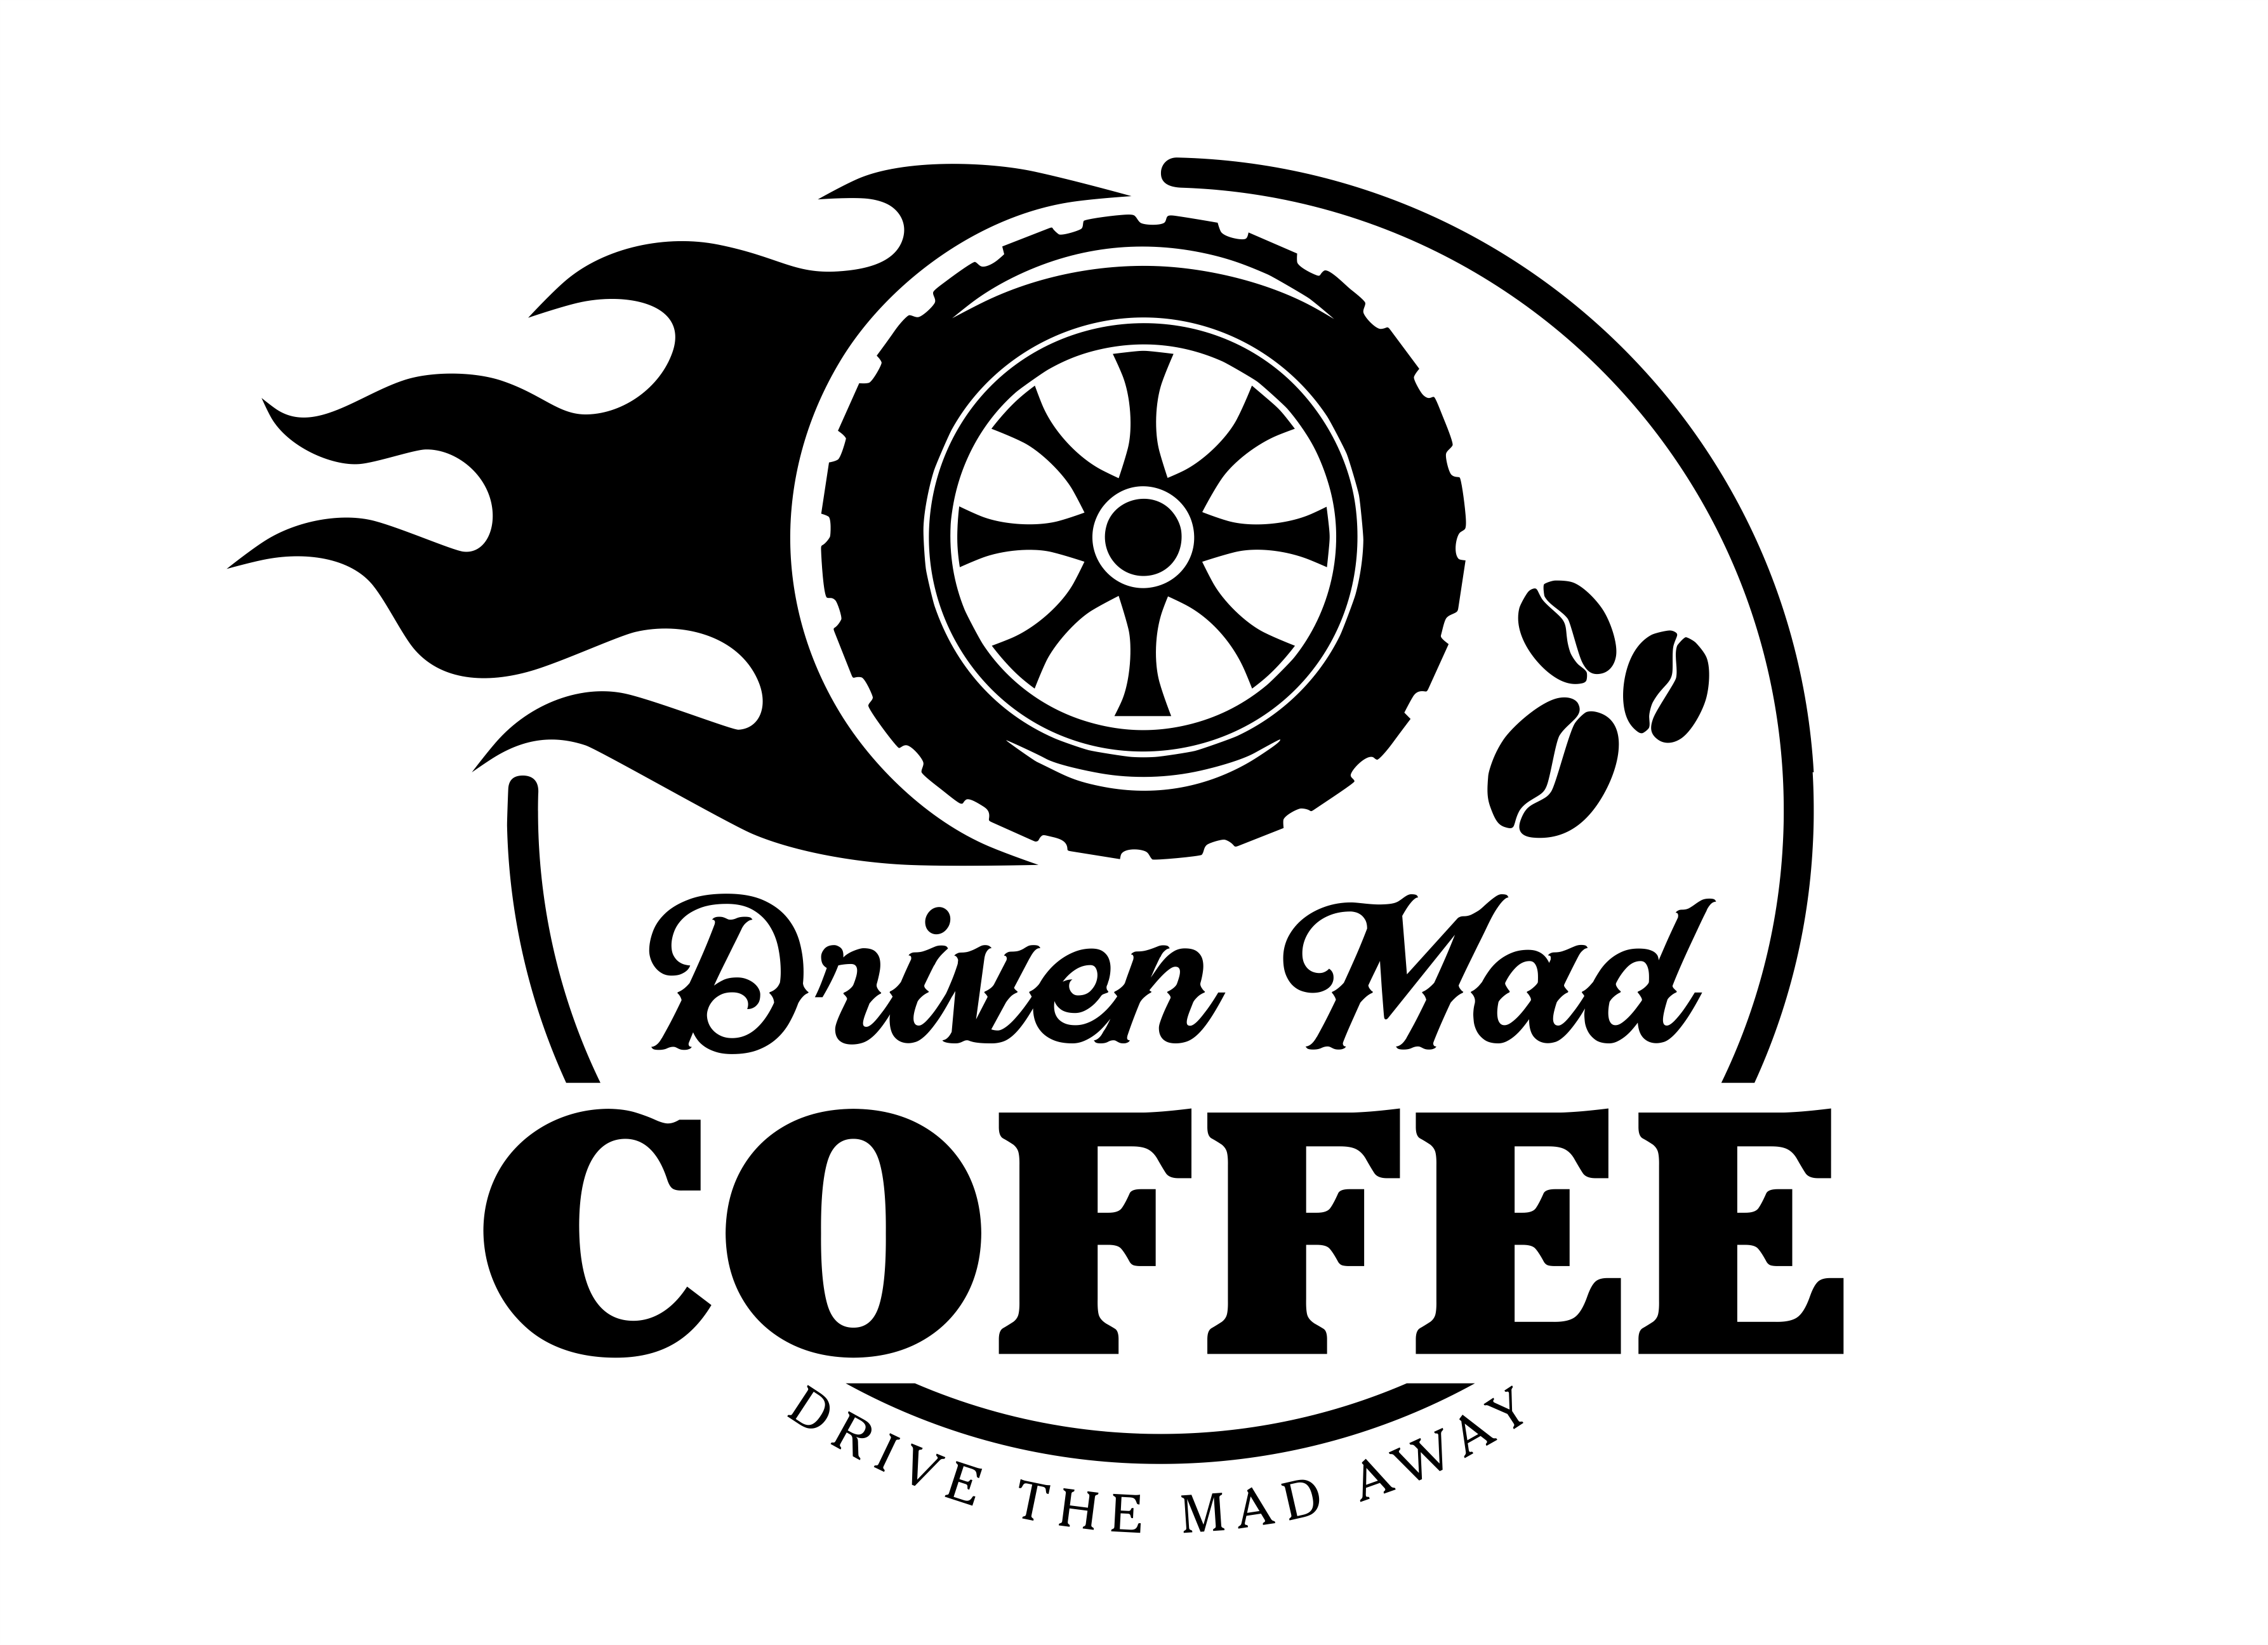 Driven Mad Coffee Logo Design by HIE Signs